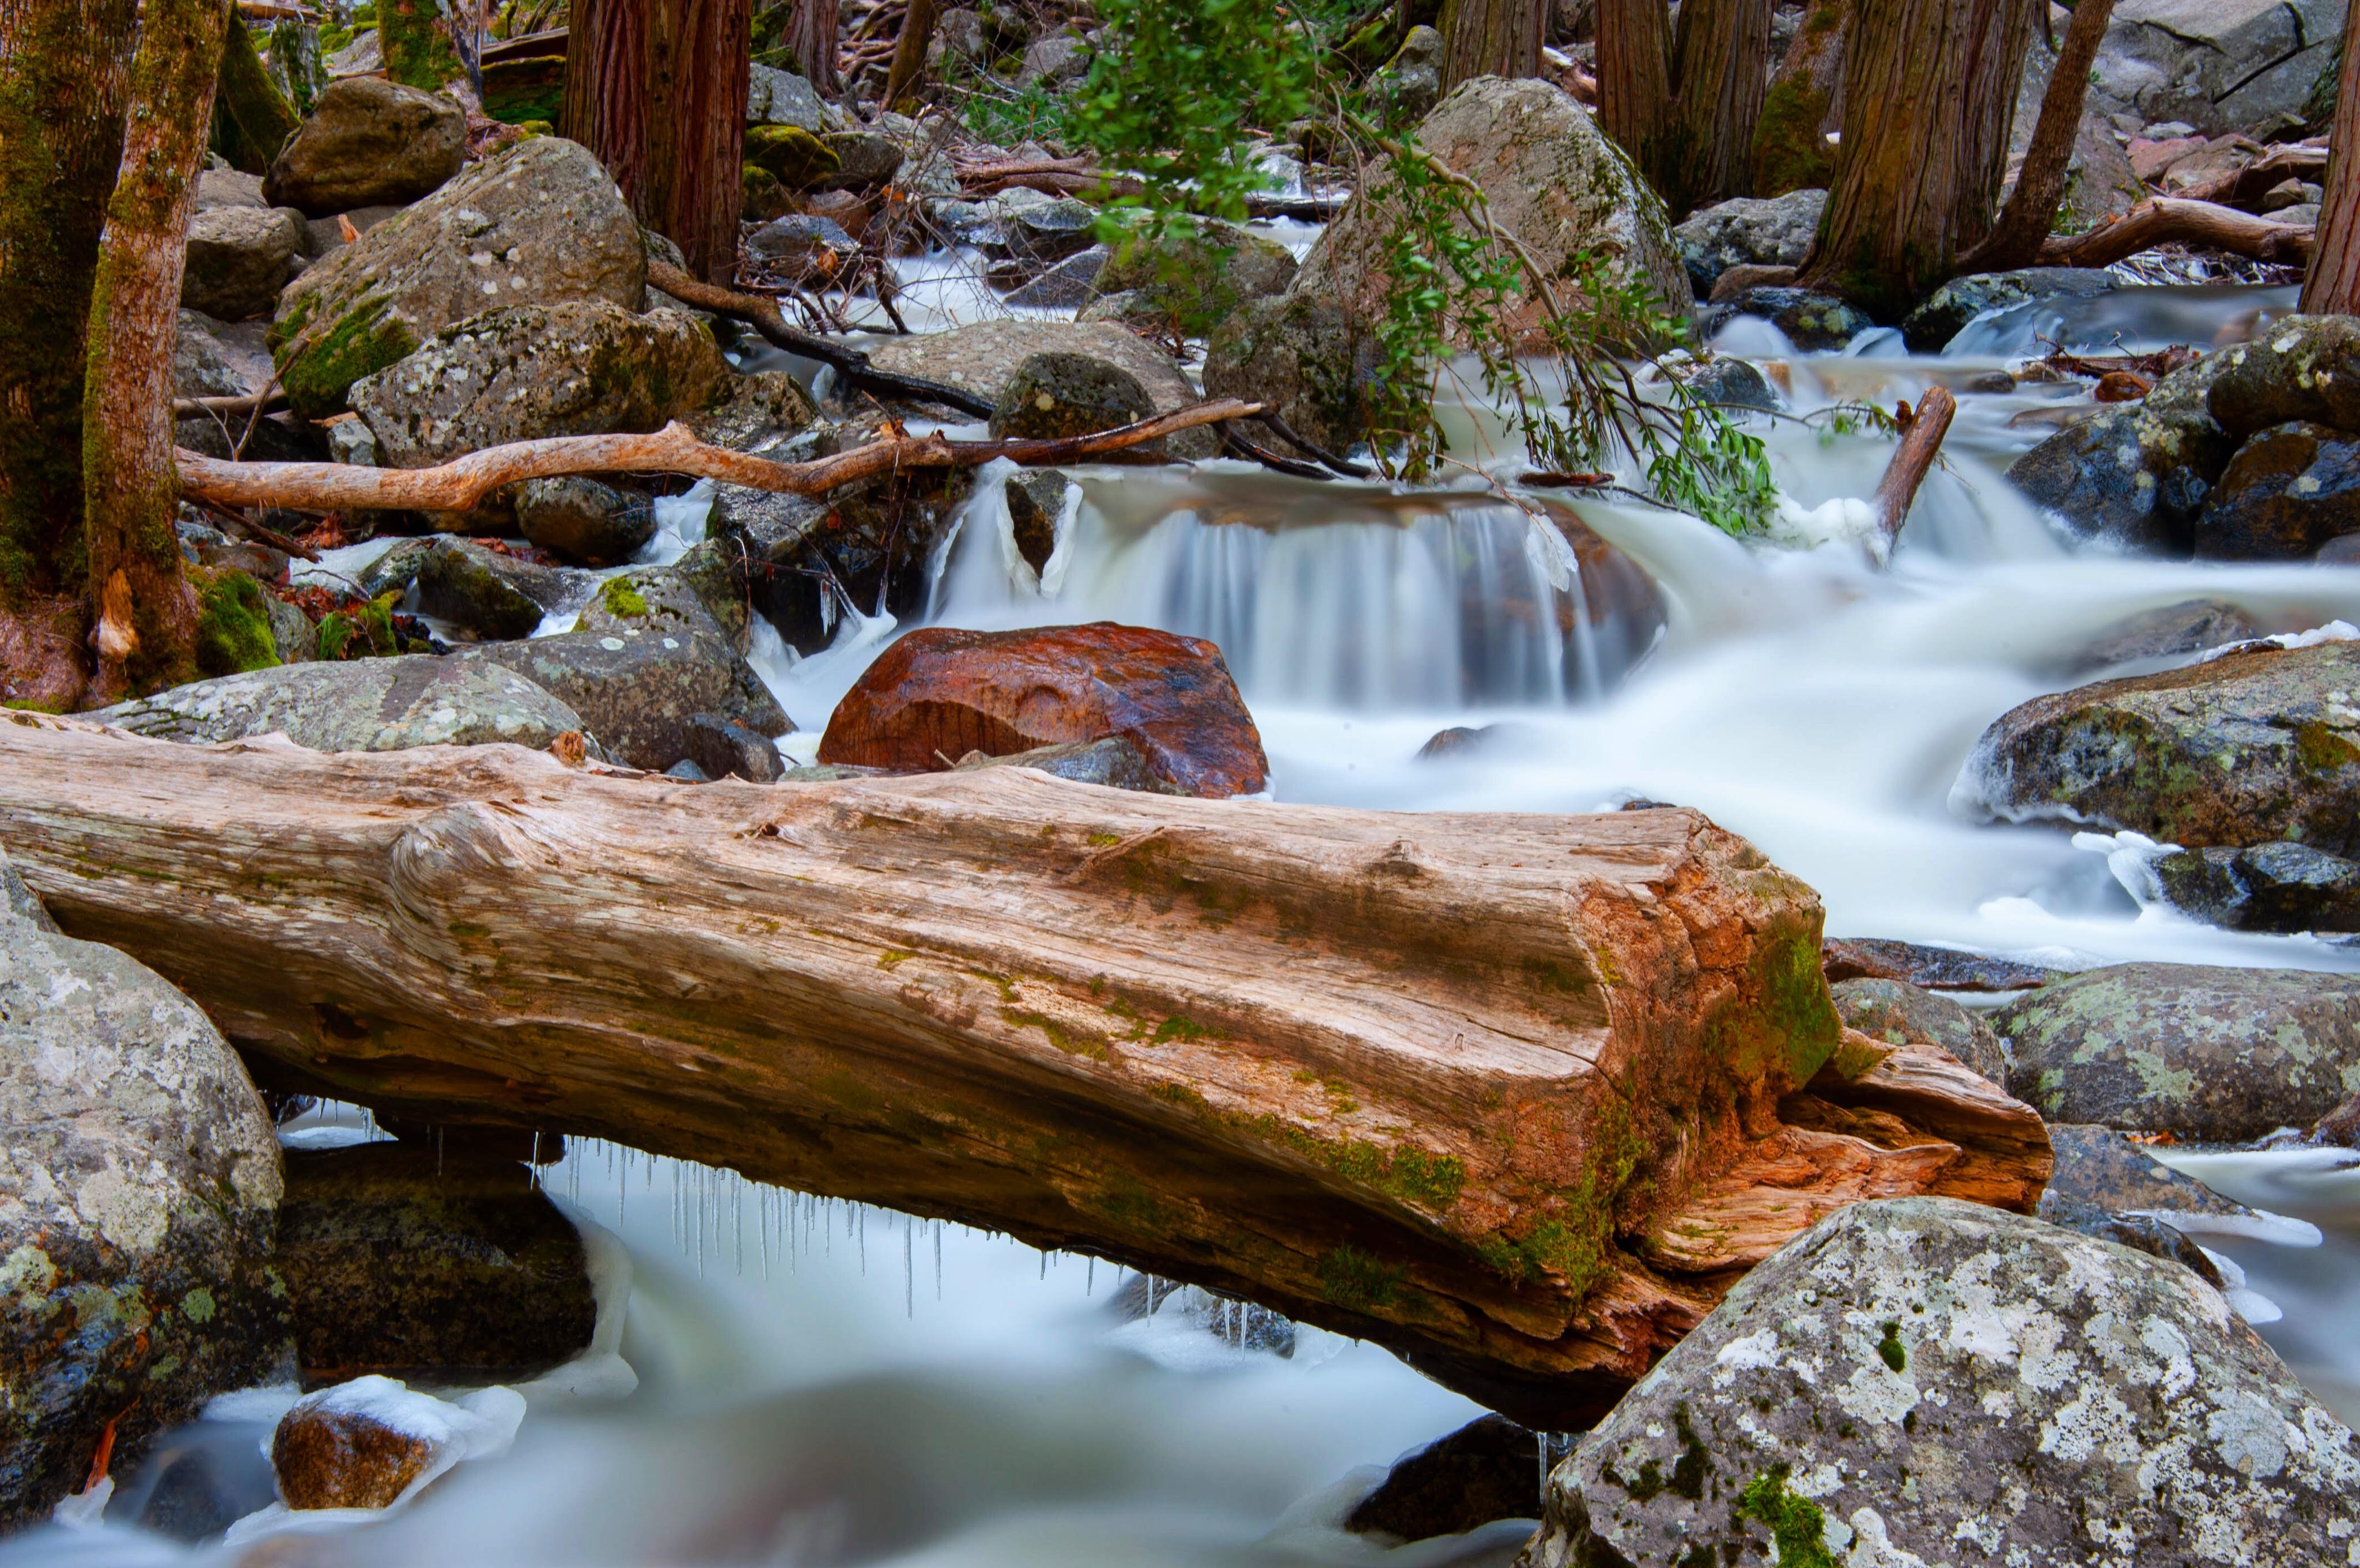 A log in the middle of a river in Yosemite National Park